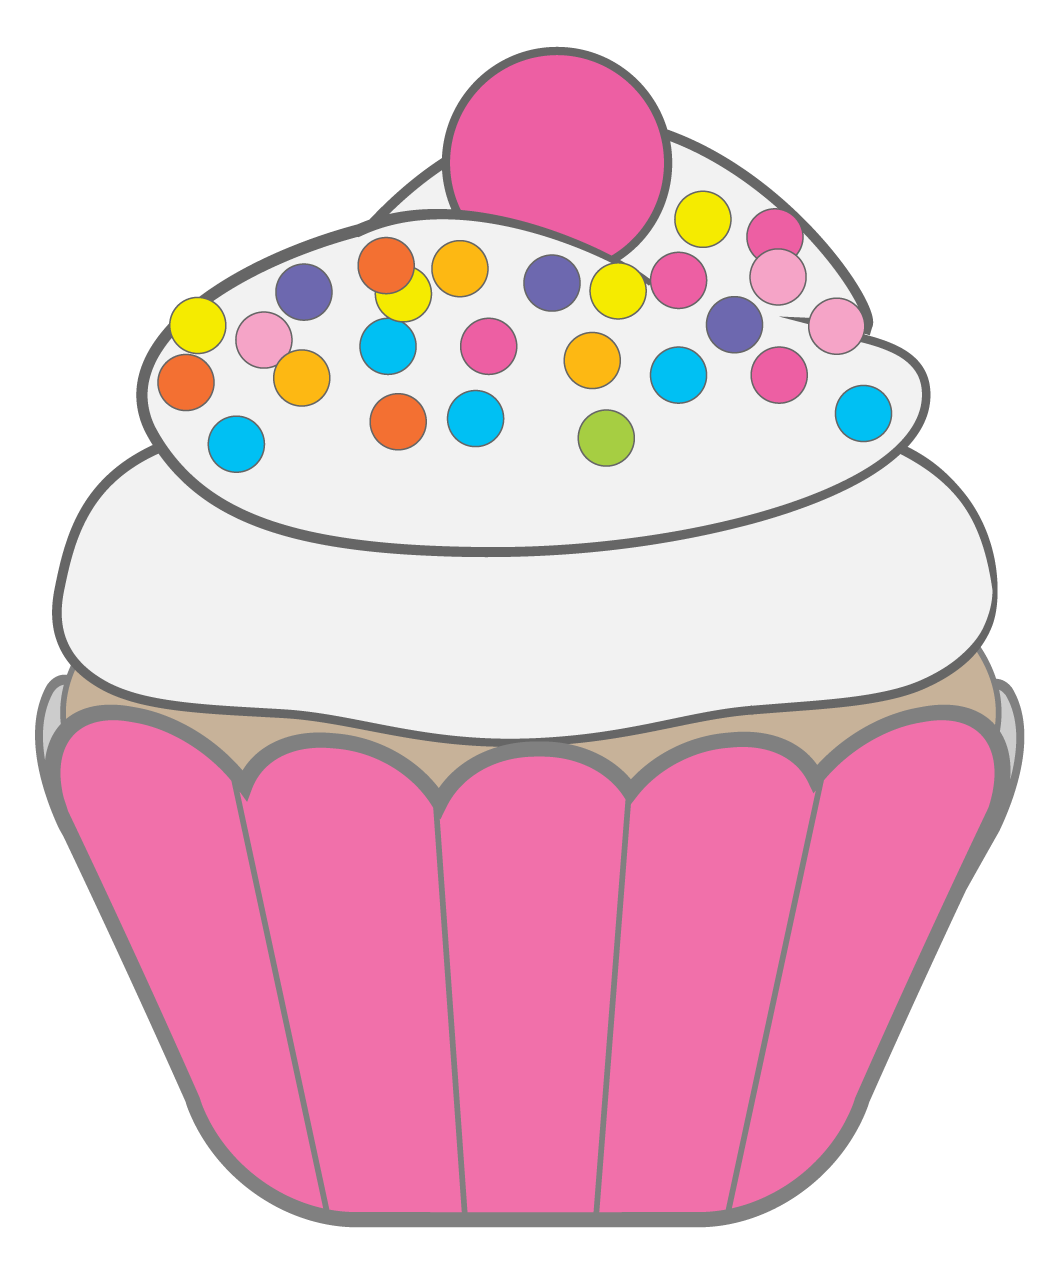 cupcakes muffins cupcake pictures clip art and cupcake birthday rh pinterest com muffin clipart black and white muffins clipart png